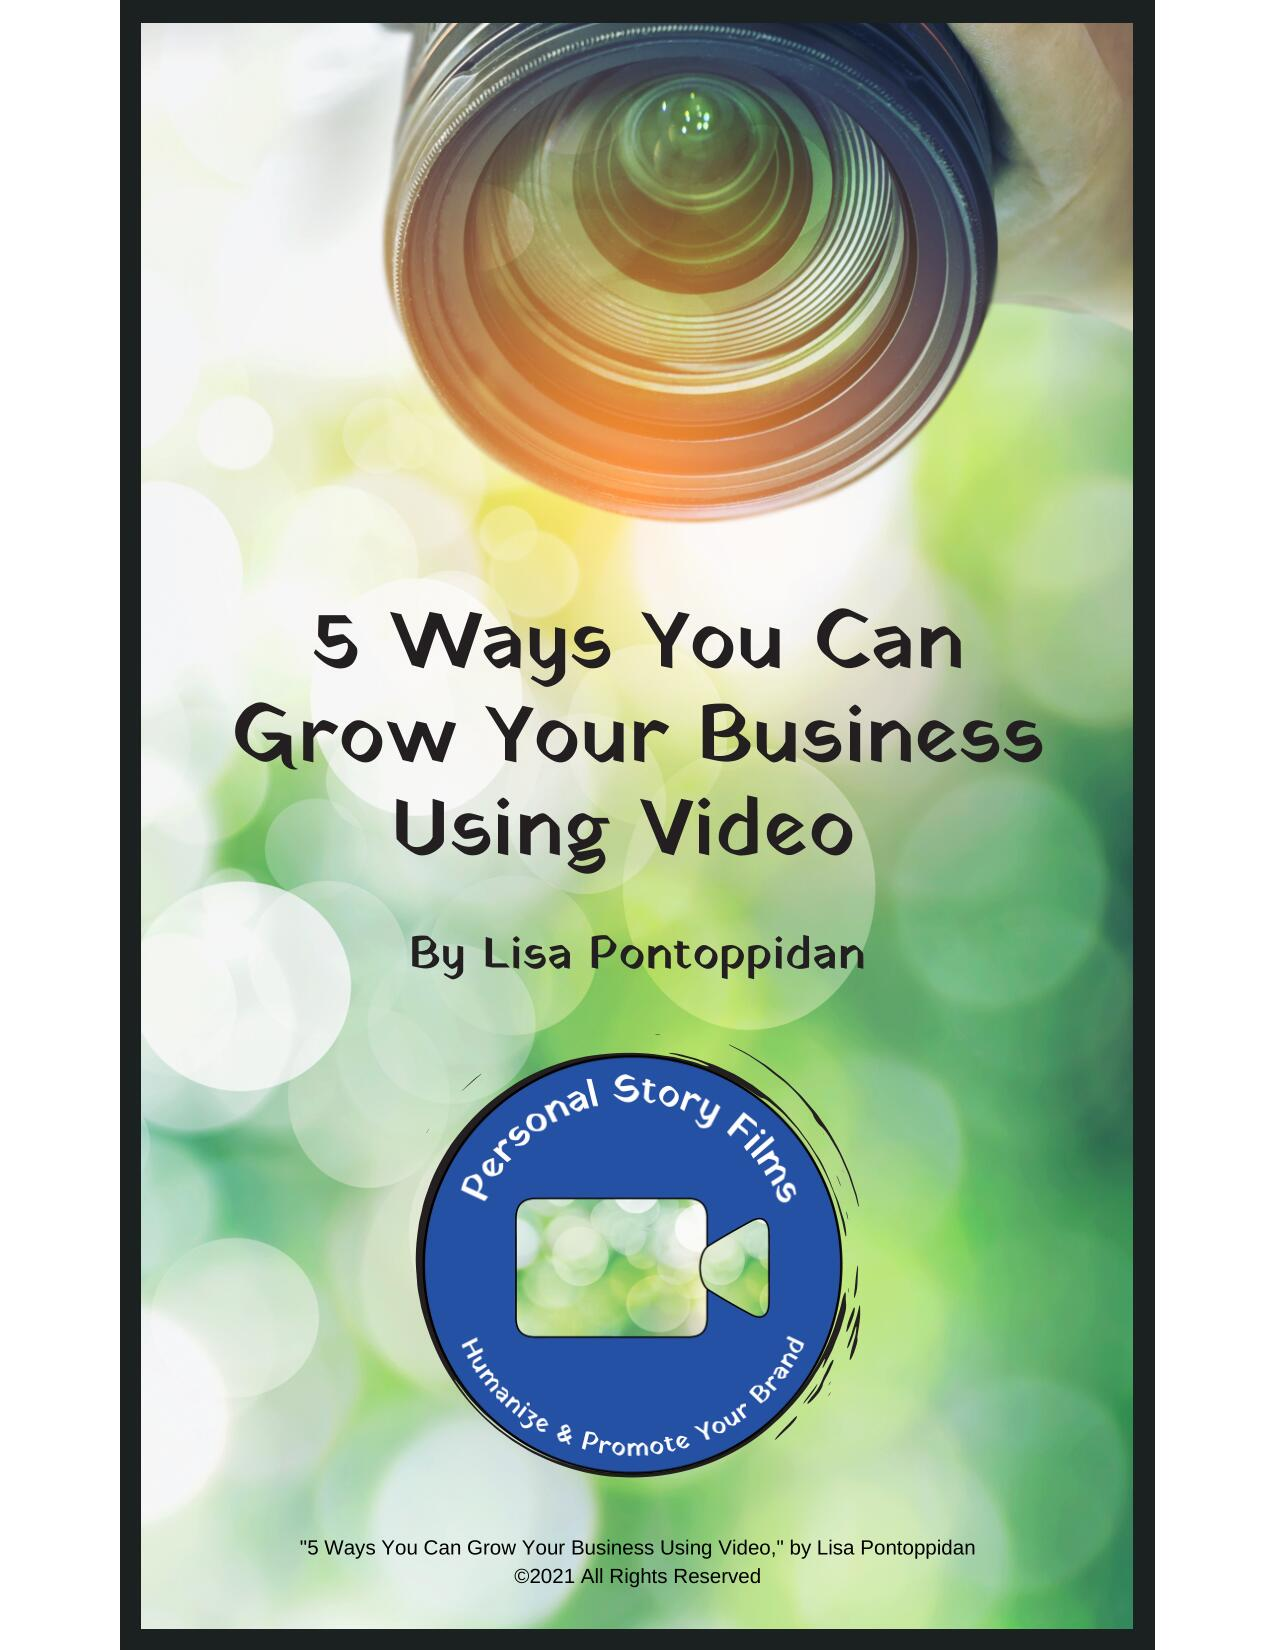 5 Ways to Grow Your Business Using Video Cover